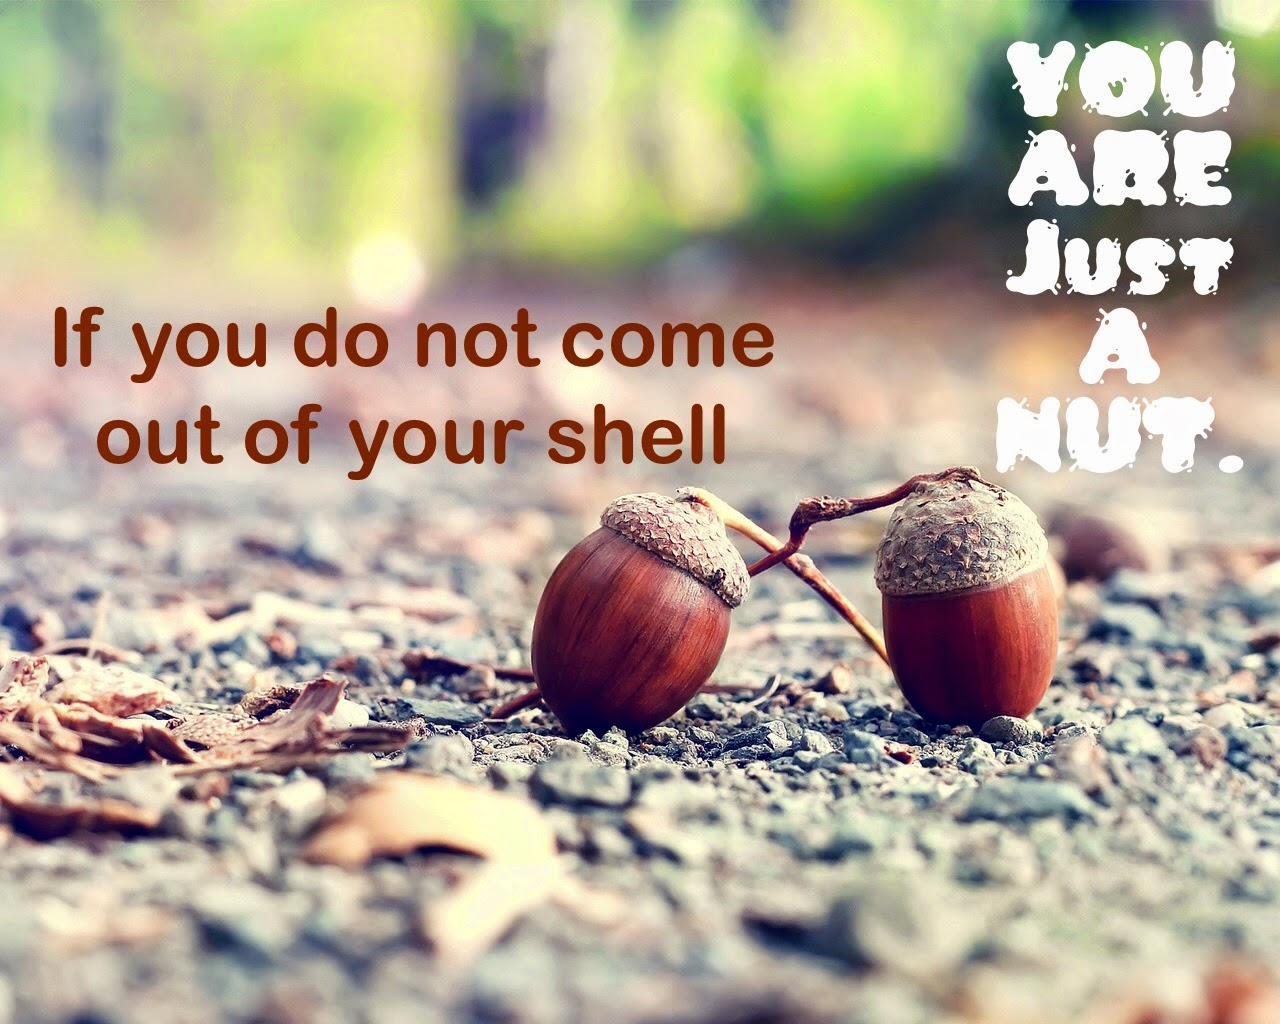 Famous Quotes, Motivational Quotes 2014, Daily thoughts